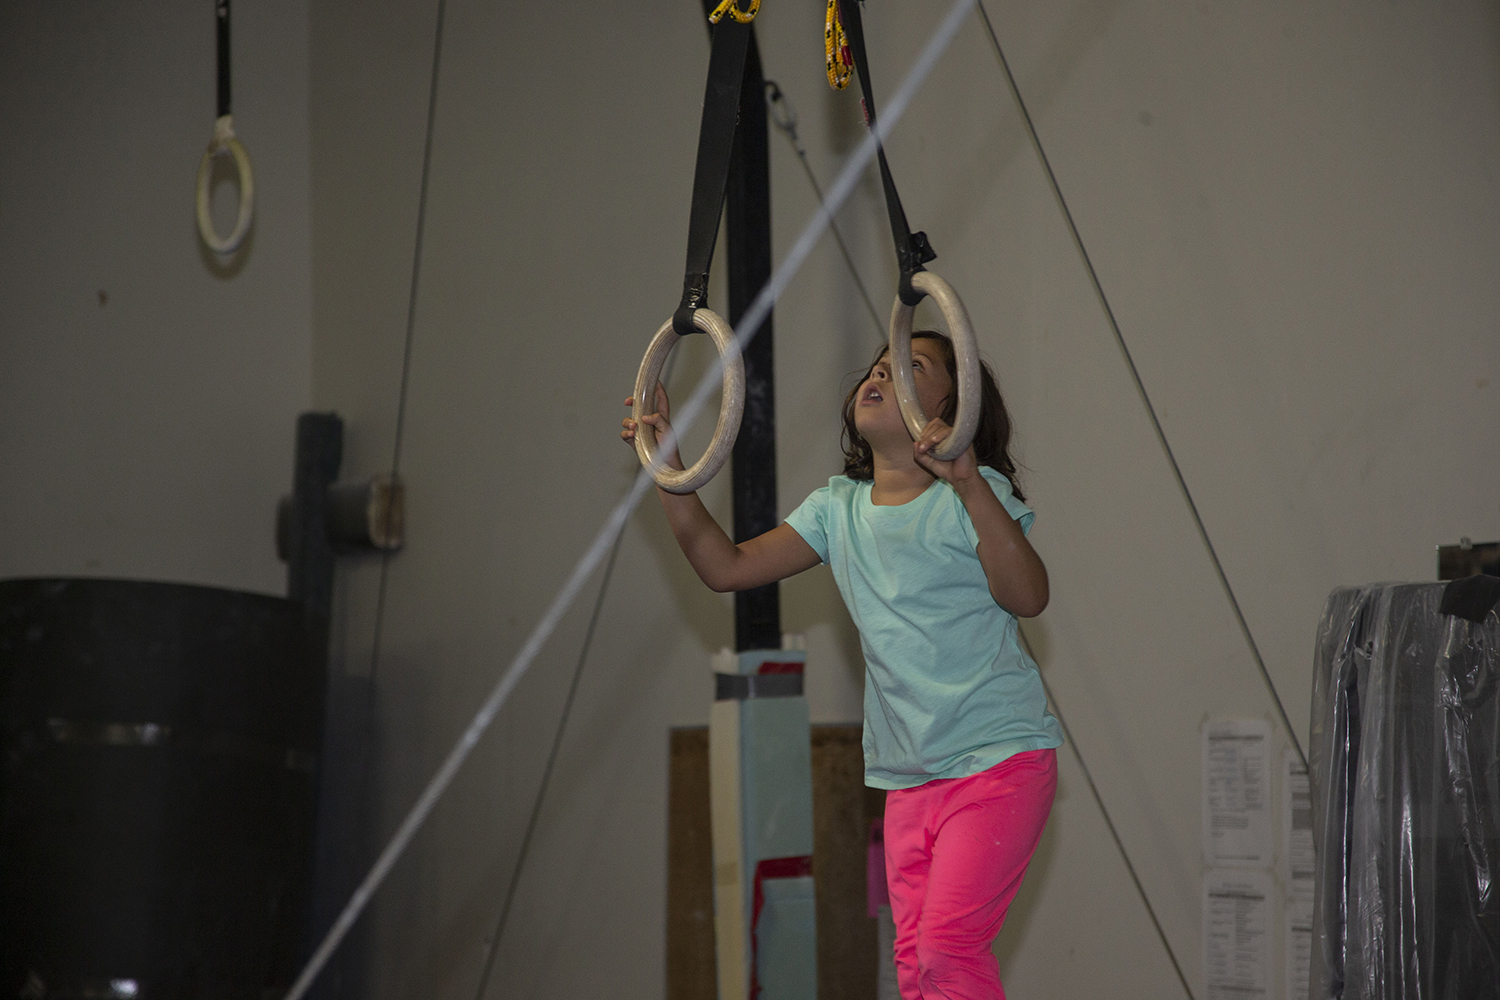 Emilia Cryer plays during a class at Gym Nest in Iowa City on Sunday, Sept. 8, 2019. Gym Nest has begun offering gym classes to children on the autism spectrum and their siblings.